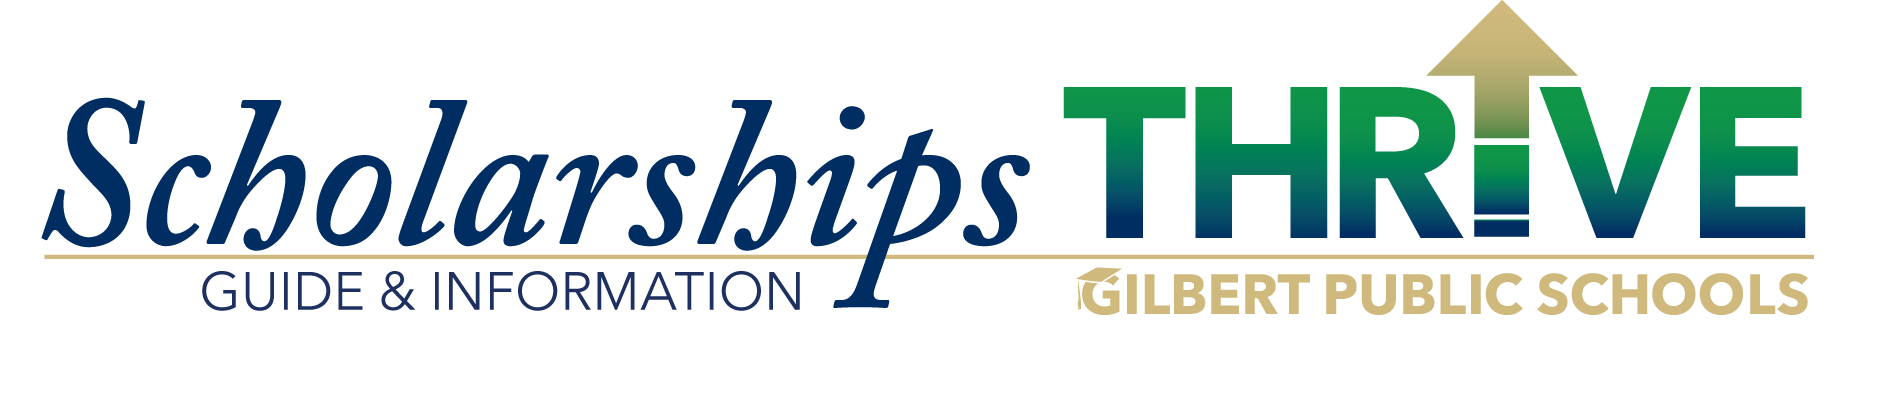 Scholarship Guide & Information THRIVE Gilbert Publics Schools